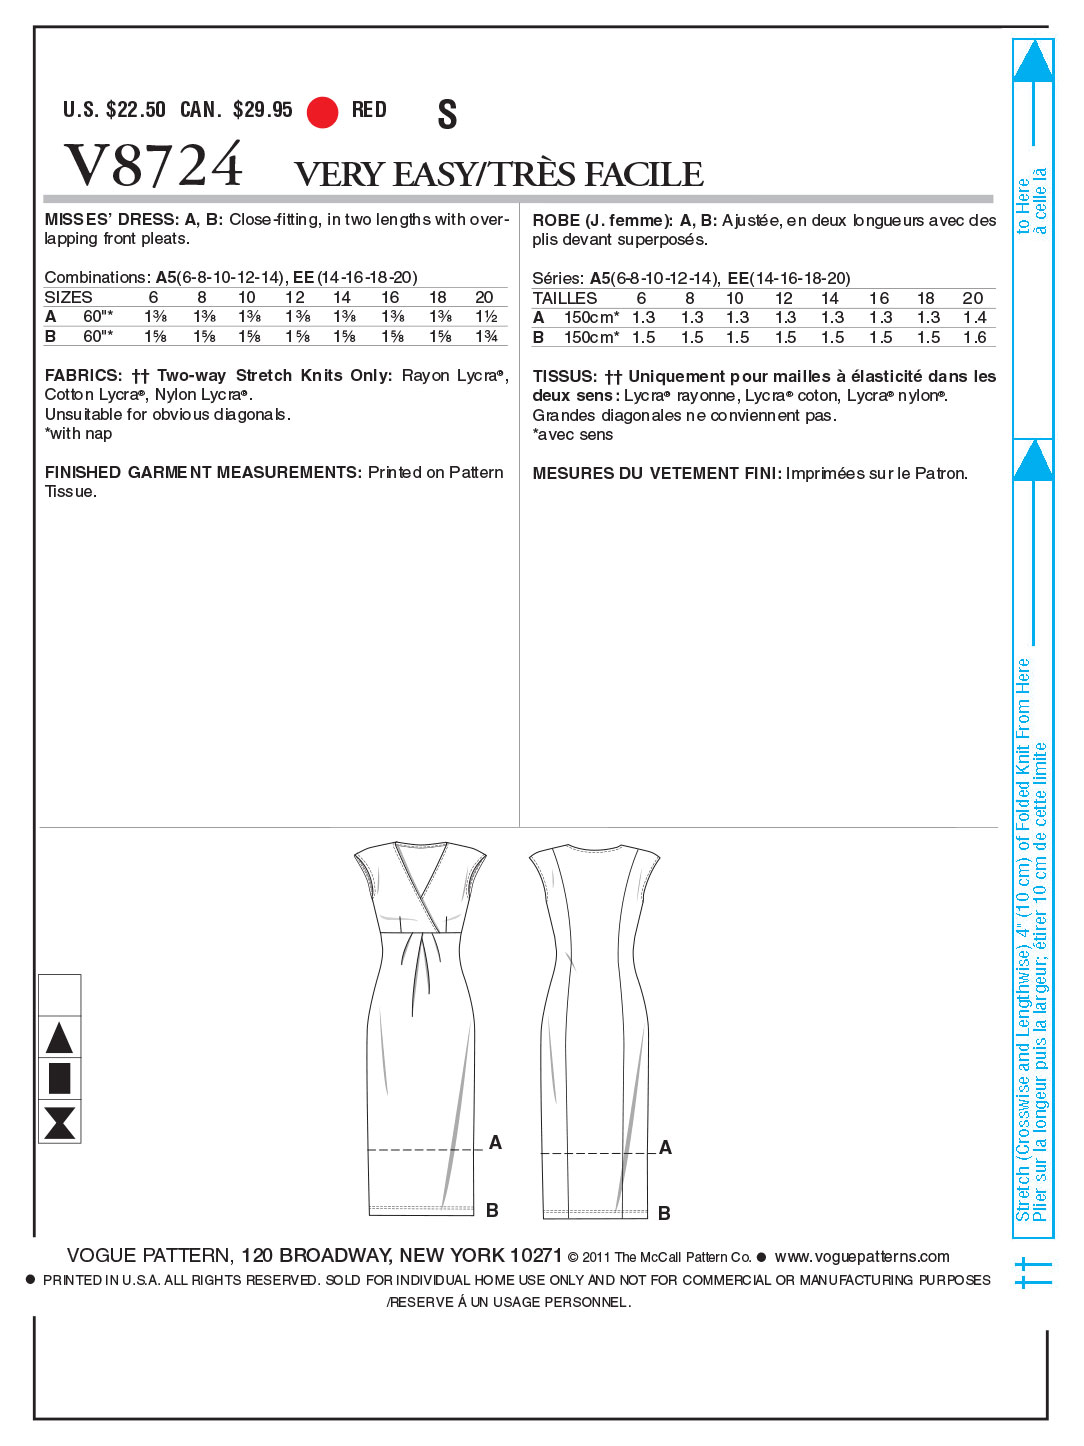 Vogue Patterns Misses Dress-V8724